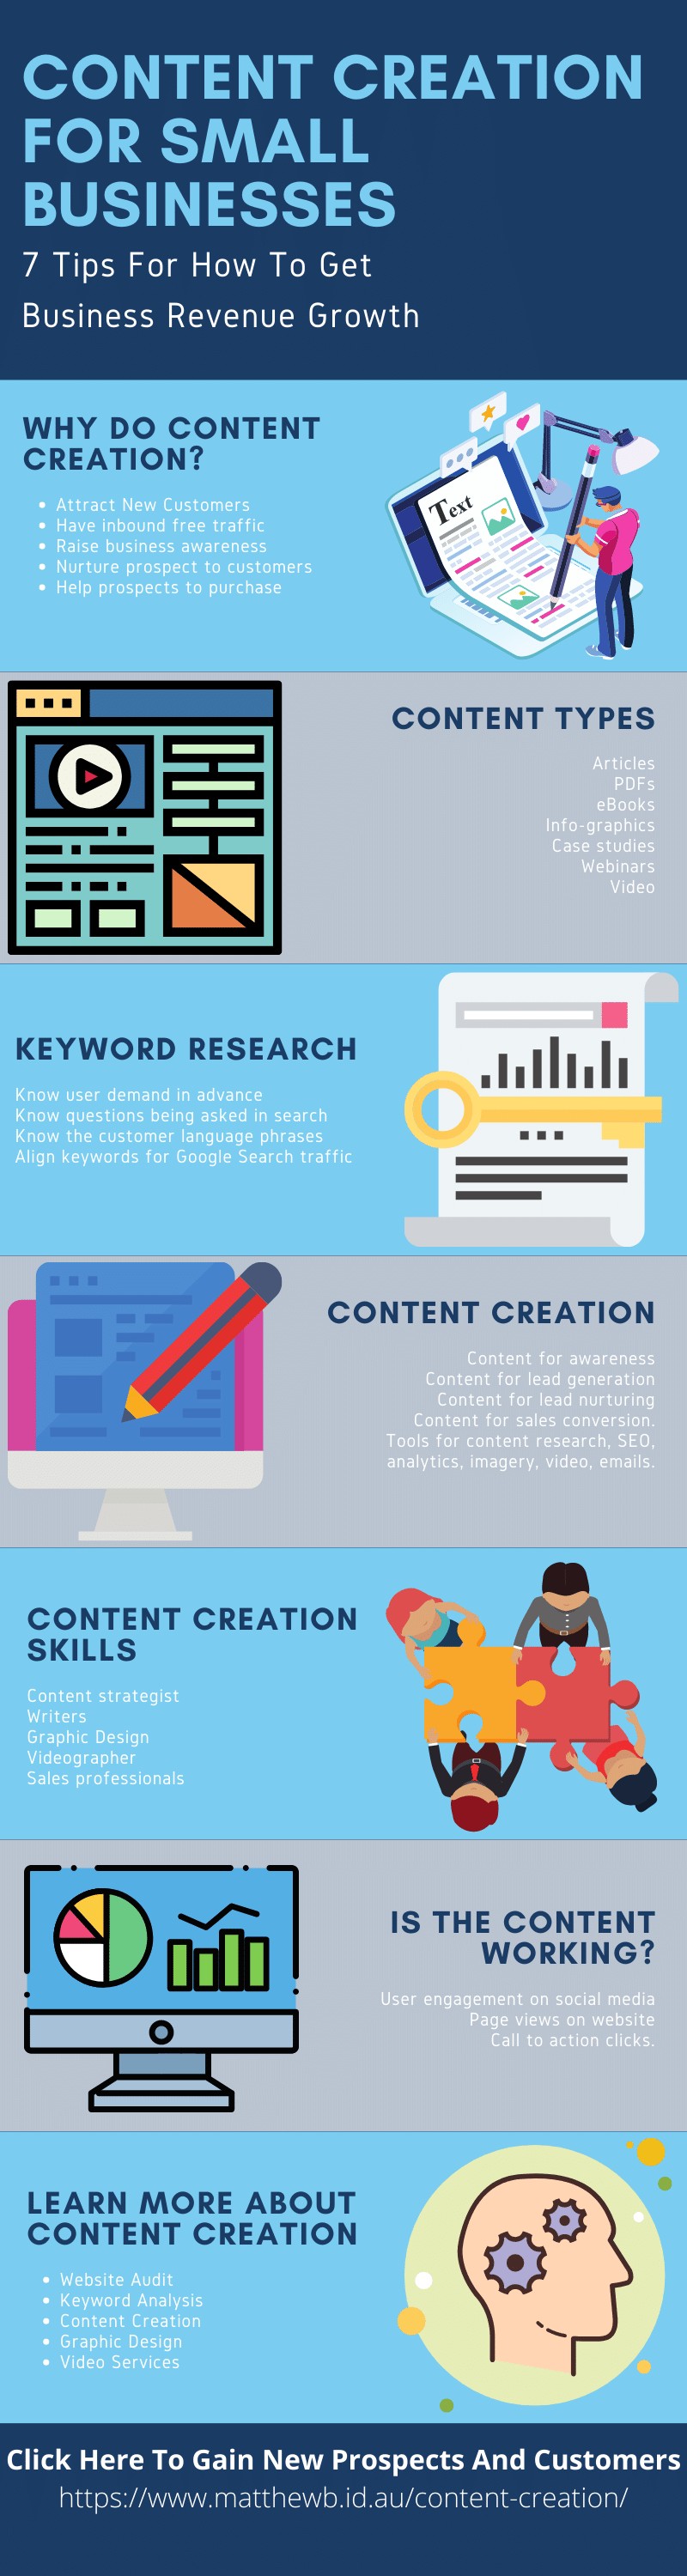 7 Things Every Small Business Needs To Know About Content Creation And Business Development - Infographic